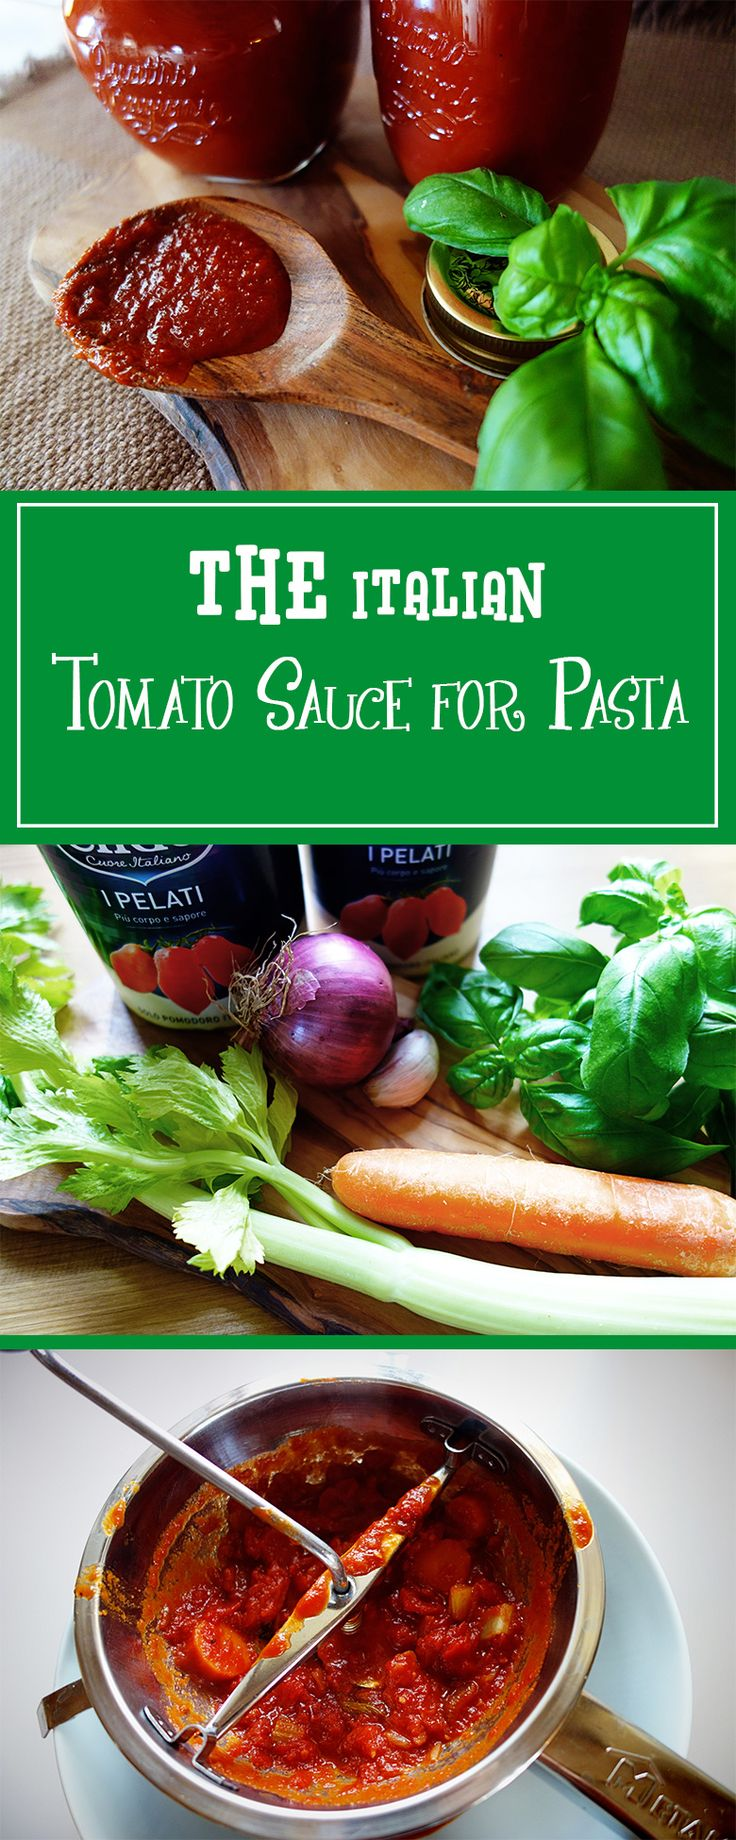 THE Italian Tomato Sauce for Pasta - simply bring Italy to your home & make your family happy with this delicious recipe! Moreover gluten-free & vegetarian. 🍅🍝🇮🇹 | cucina-con-amore.com